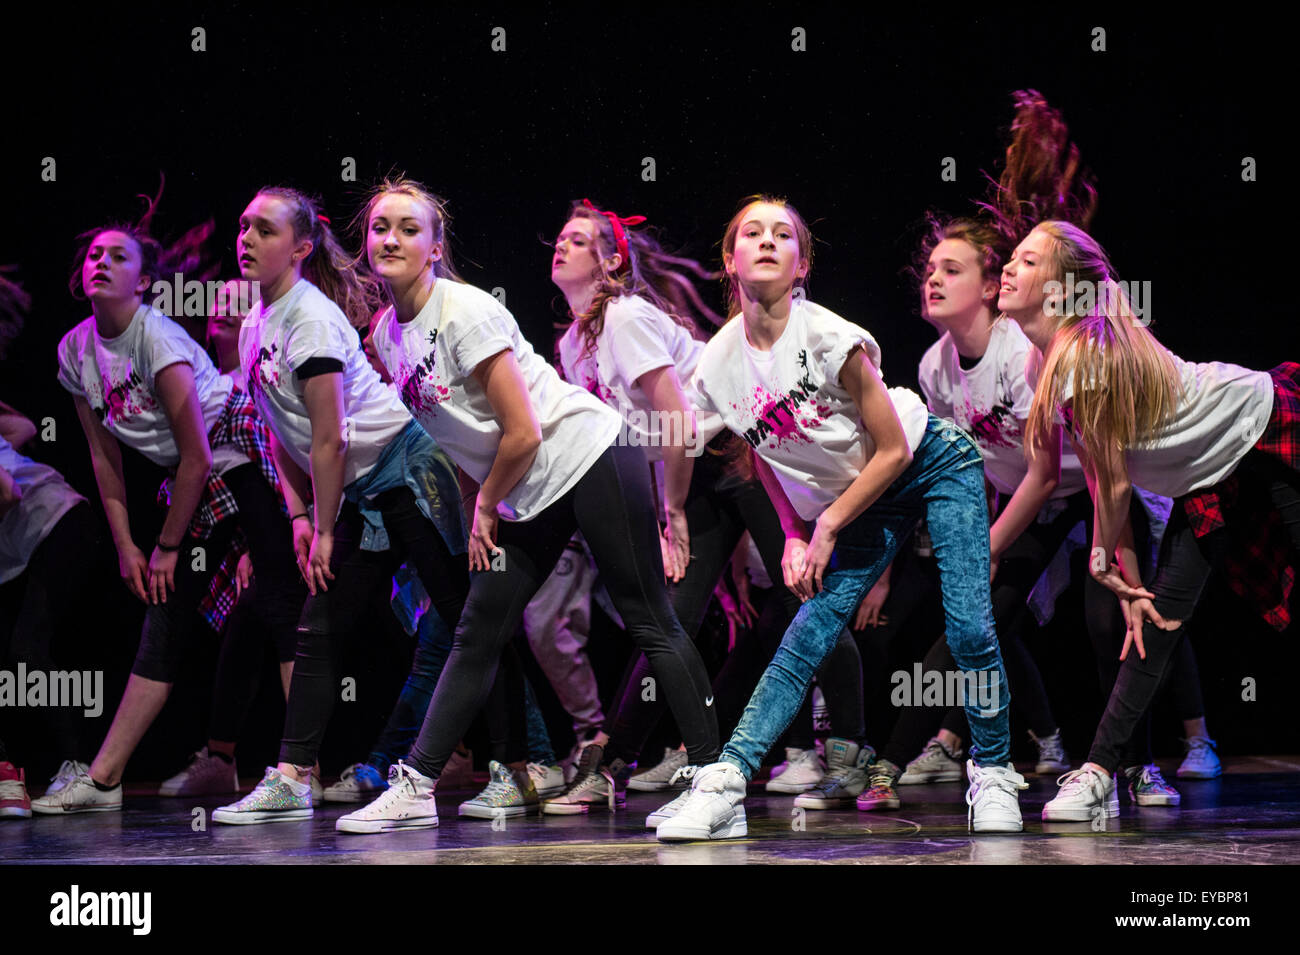 A group of teenage girls performing choreographed modern urban dance routines on stage at Aberystwyth Arets Centre - Stock Image